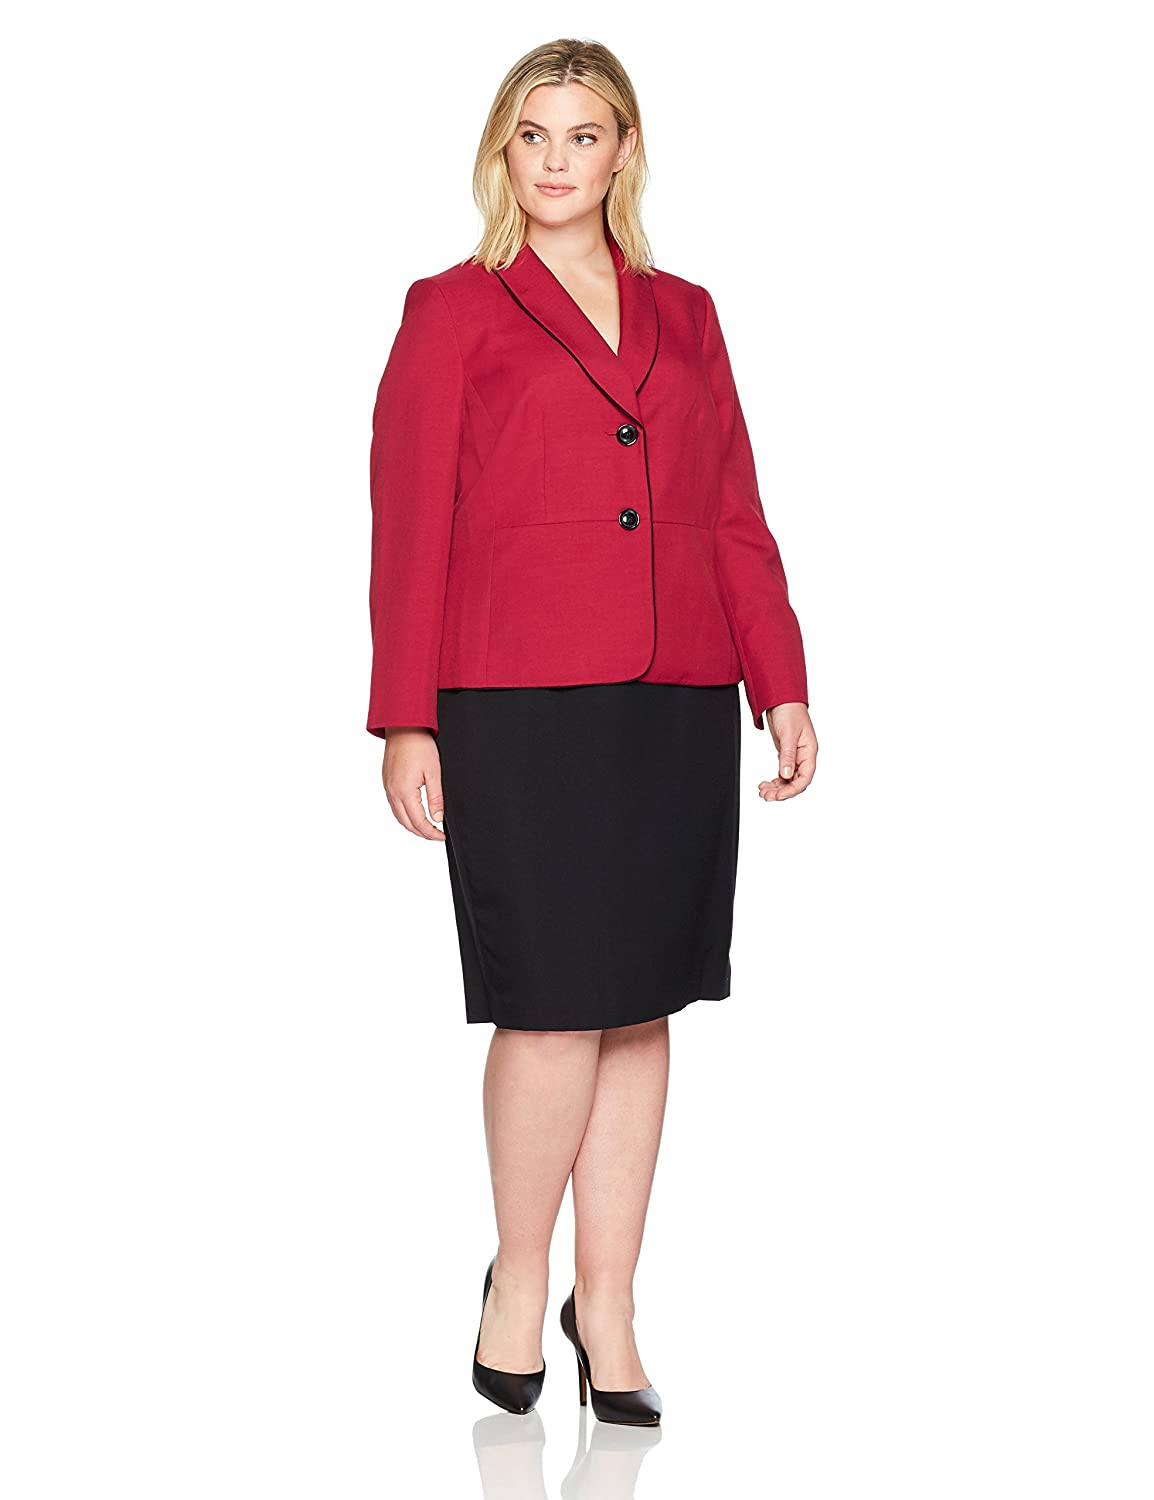 Le Suit Women's Plus Size Glazed Melange Two Button Skirt Le Suit Women's Suits 50036245-1KT